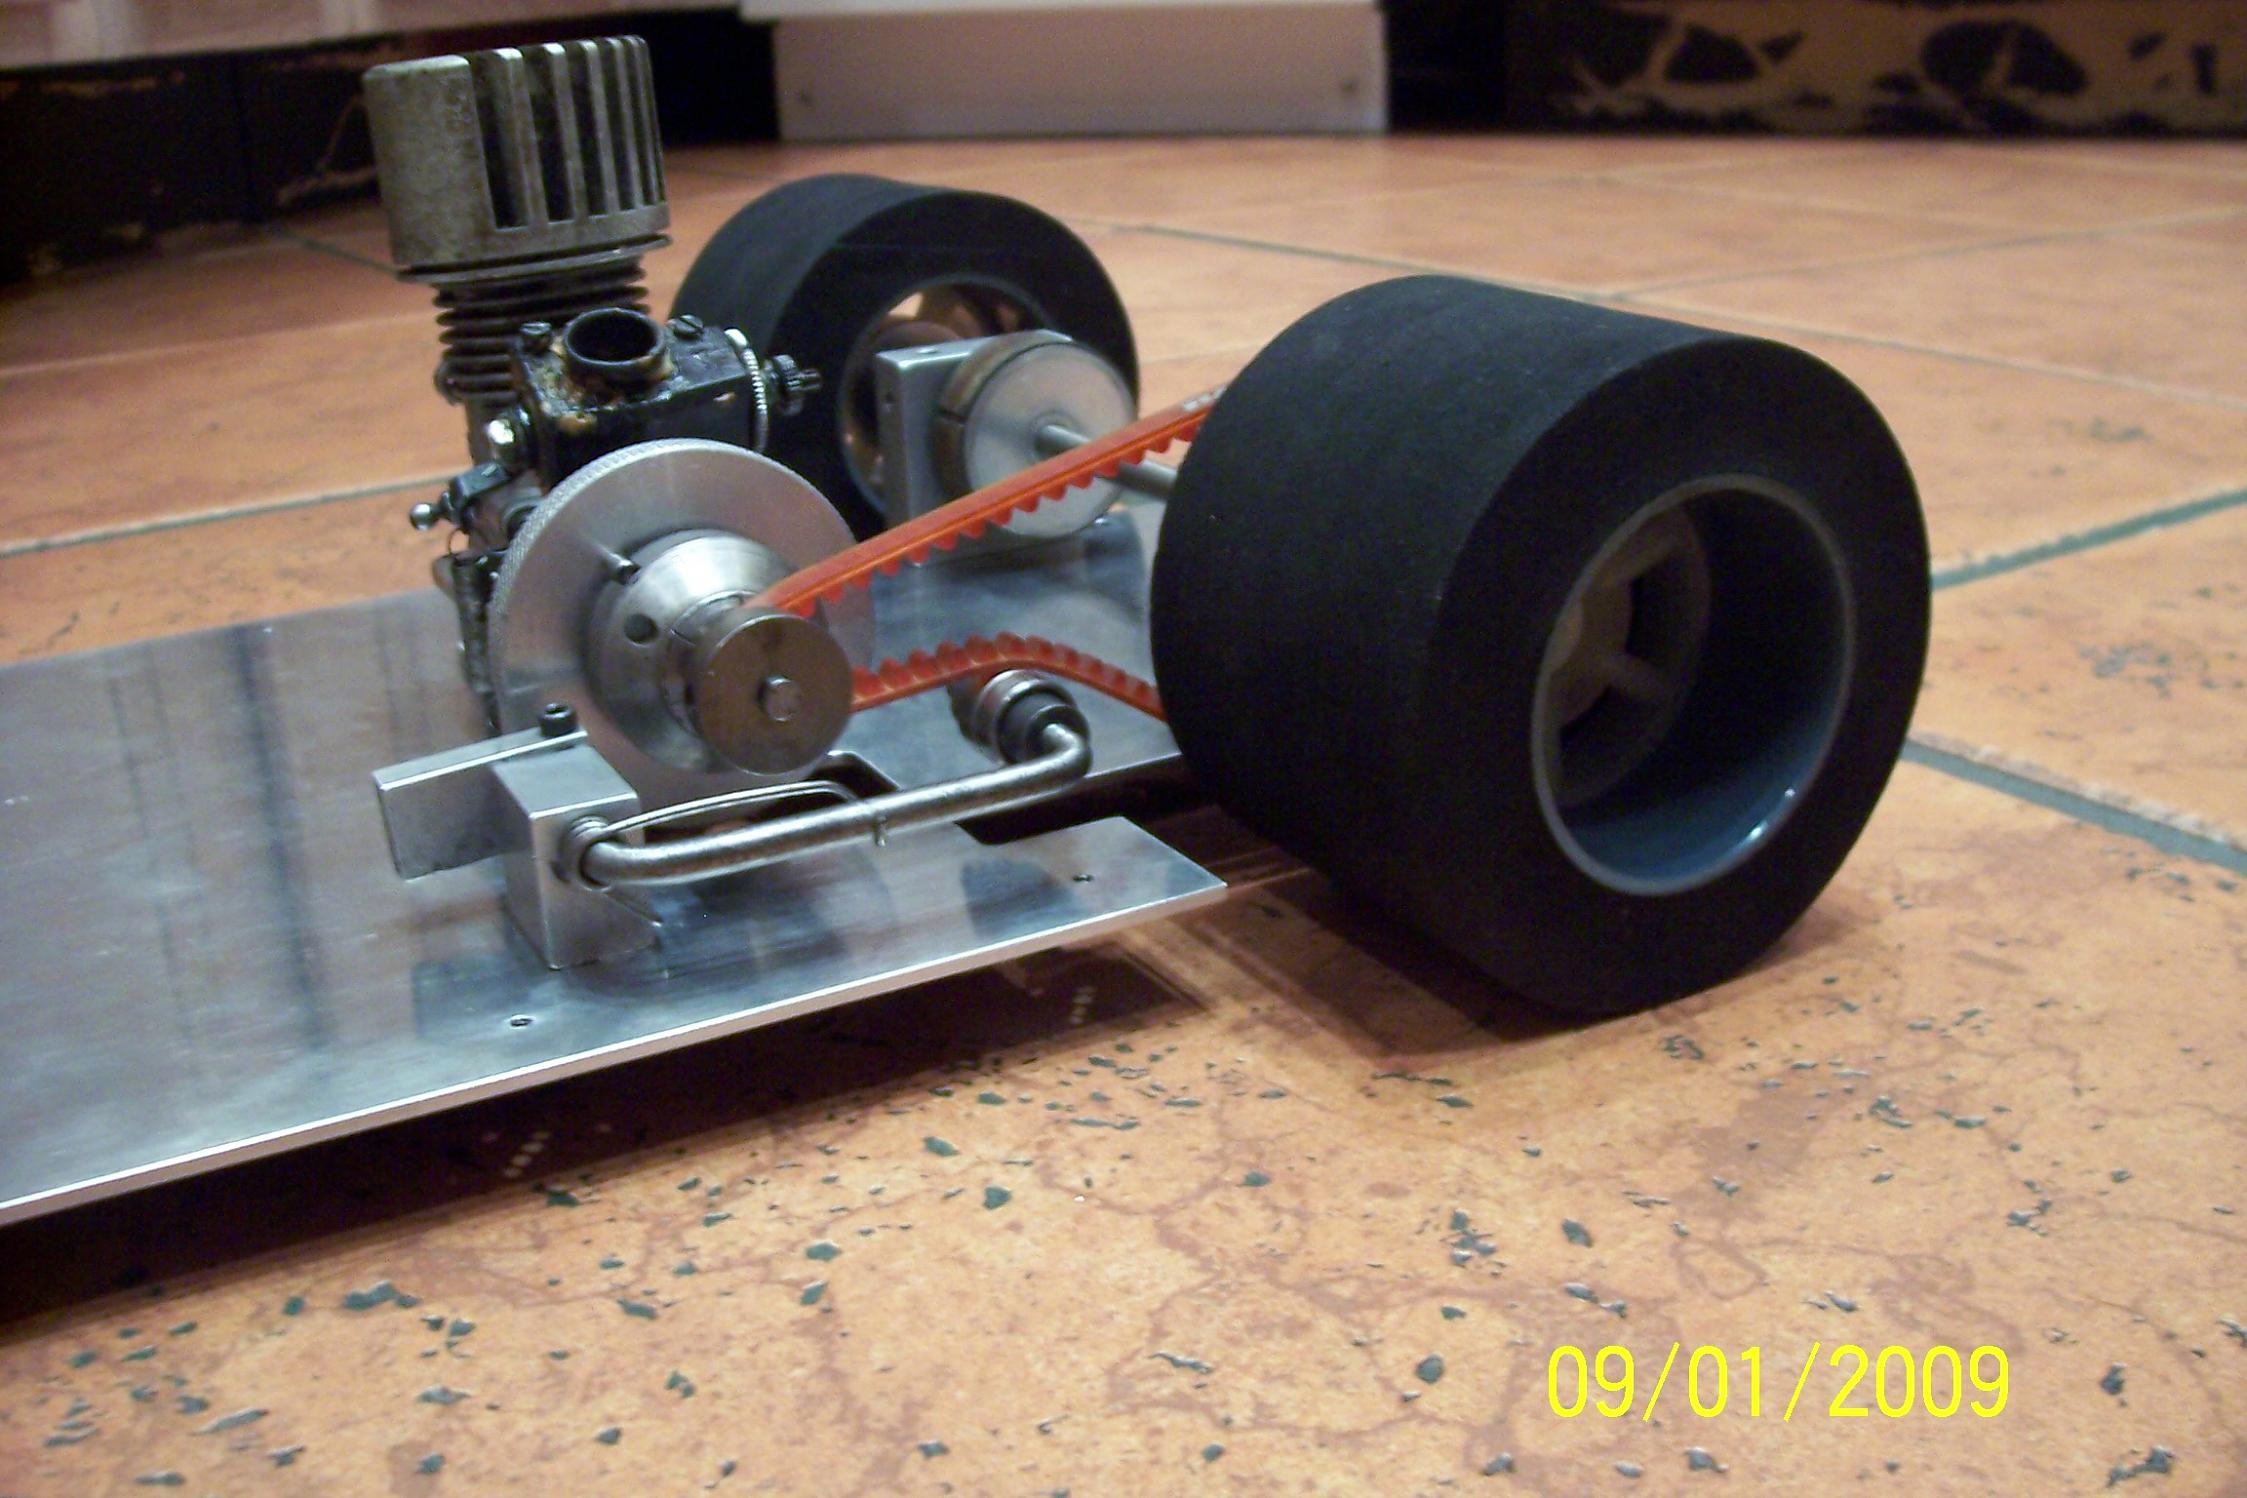 Homemade Rc Car 1:8 vintage rc car chassis